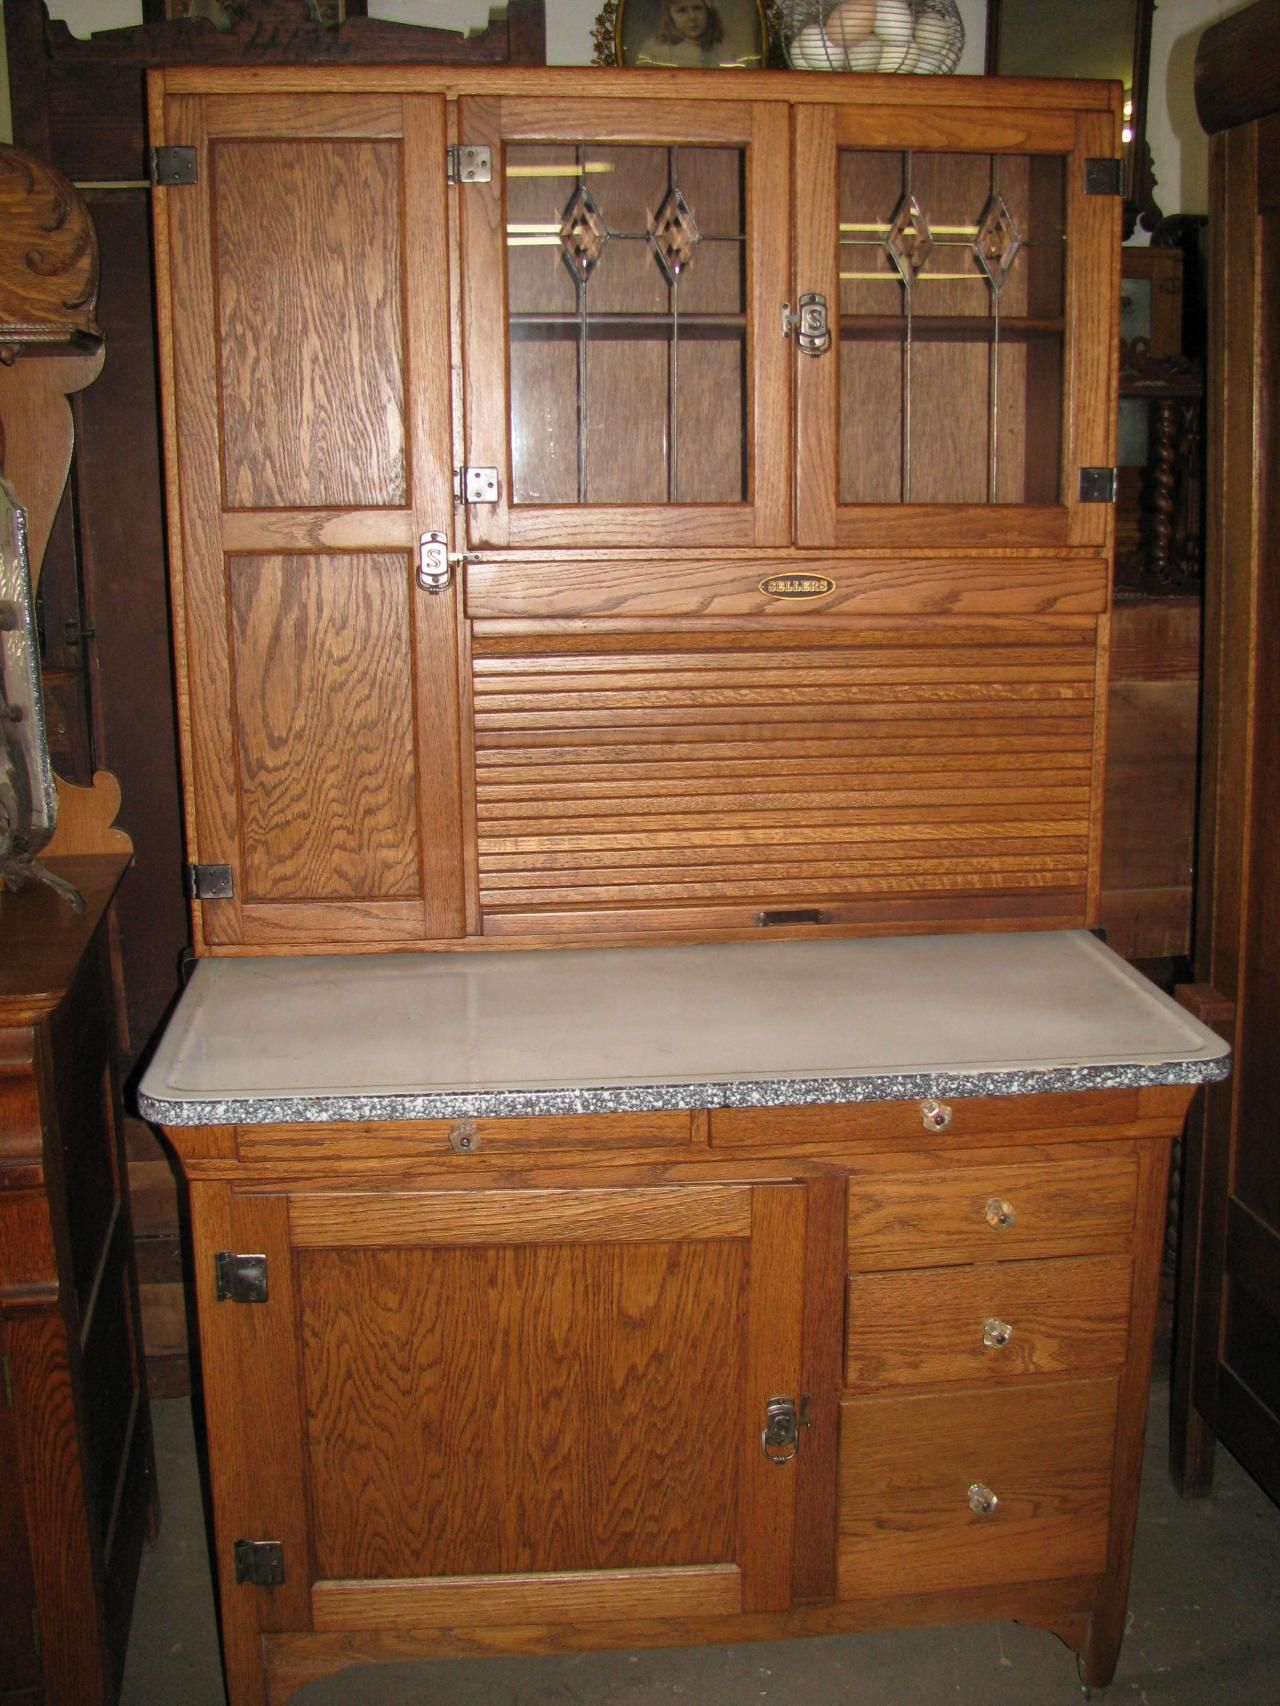 Sellers Kitchen/Bakers Cabinet Circa 1917-1920 w/ leaded glass ...